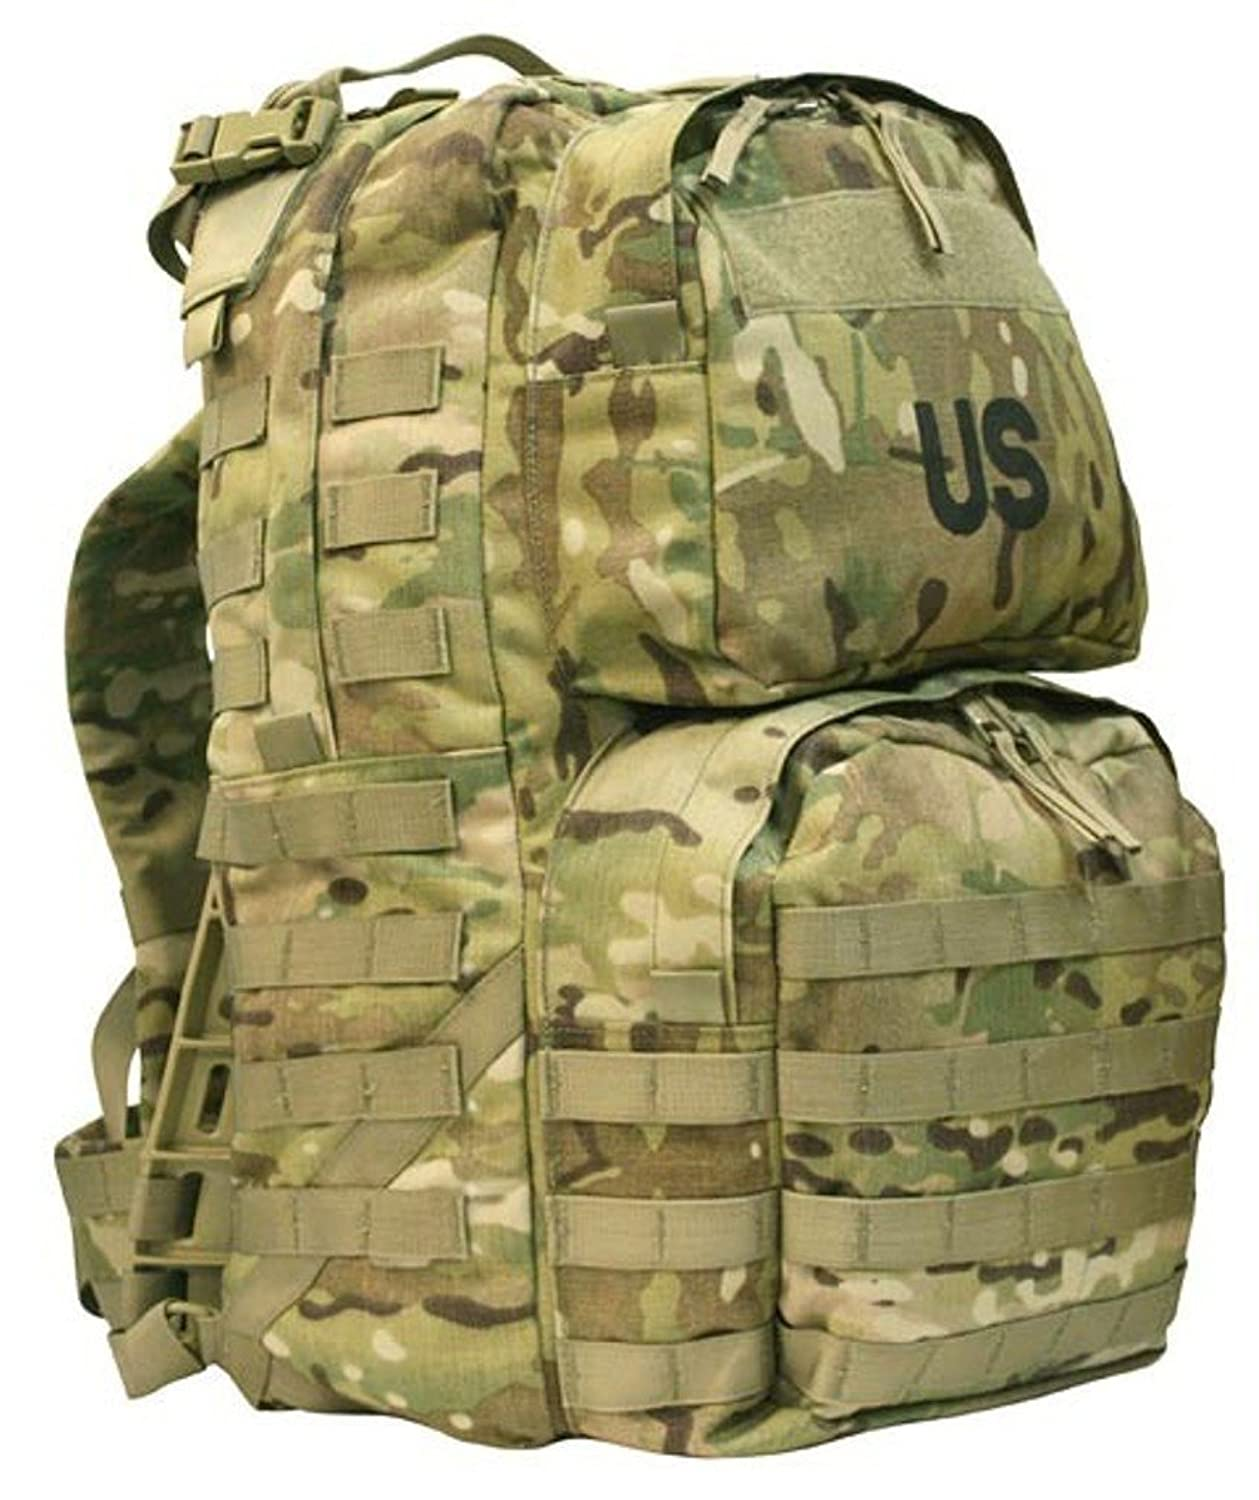 amazoncom molle medium rucksack nsn 8465 01 585 1512 multicam ocp official usgi rfi issue clothing - Military Rucksack With Frame